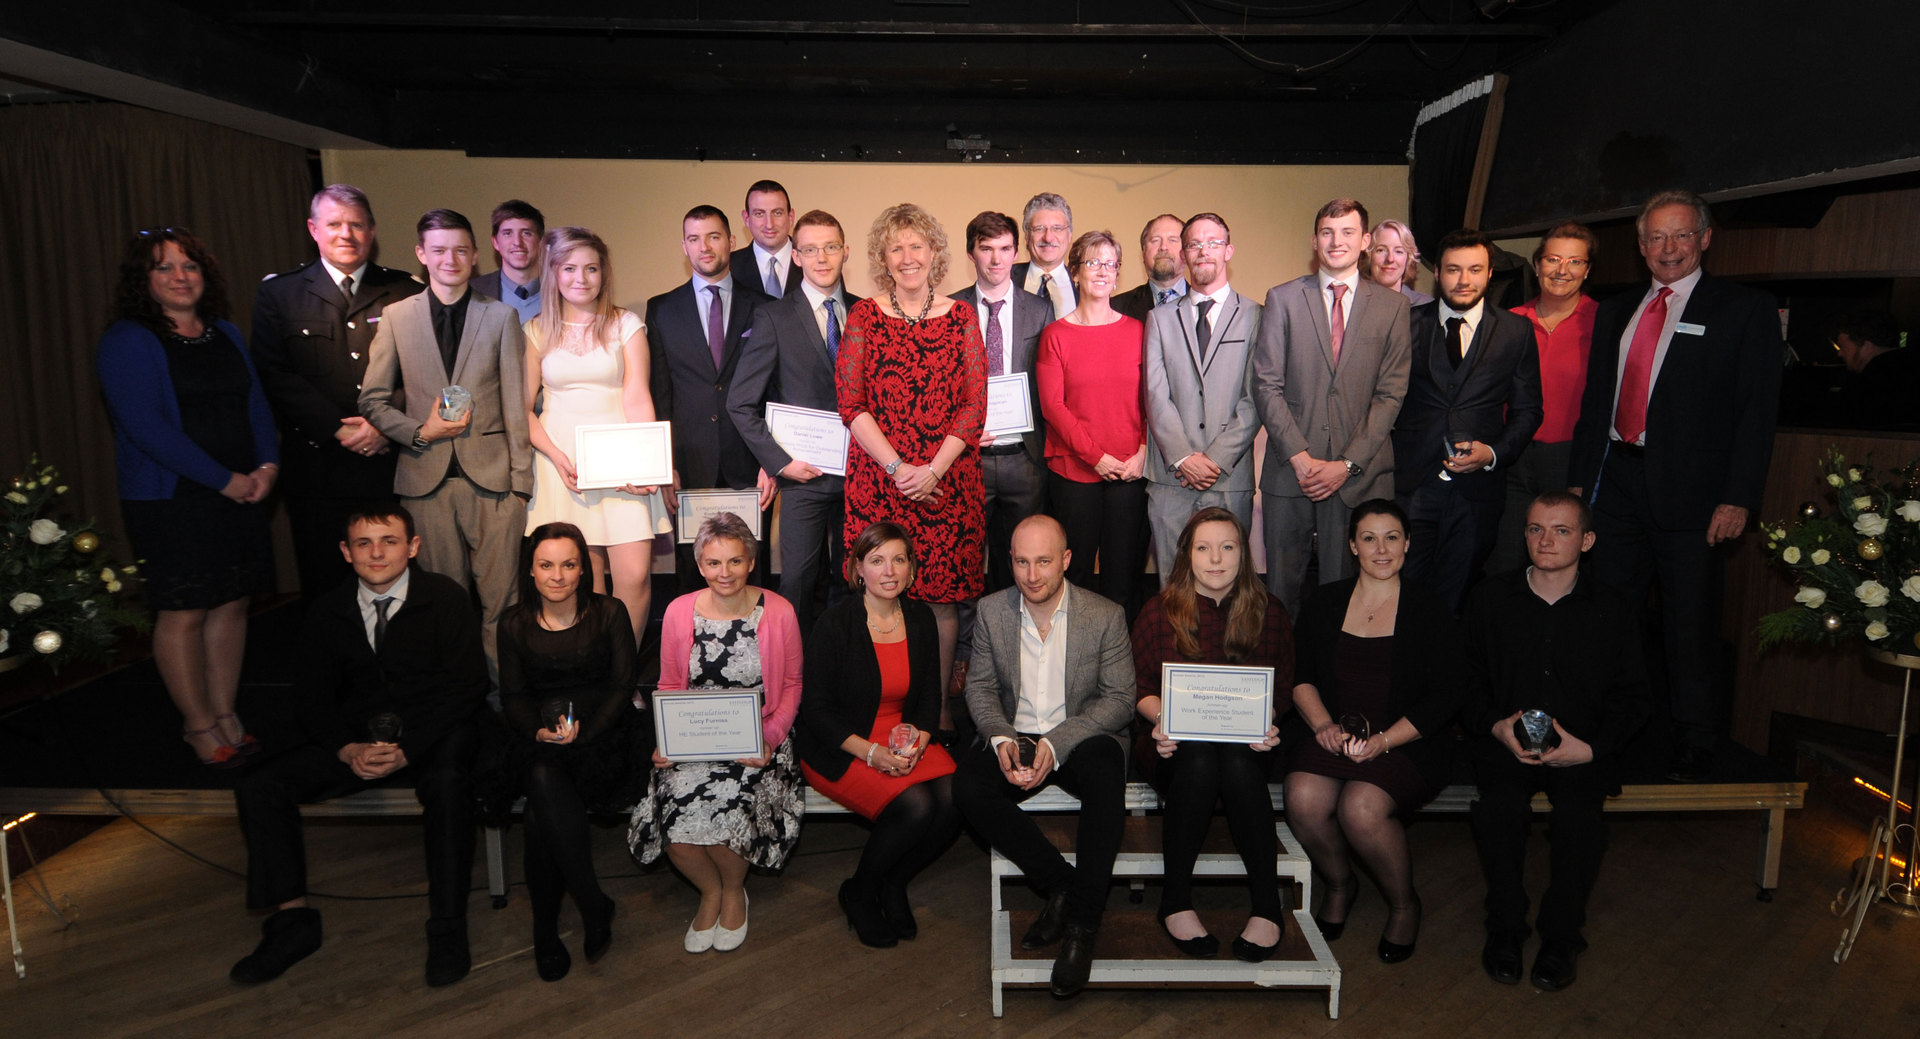 Students and staff triumph at our Annual Awards Ceremony!